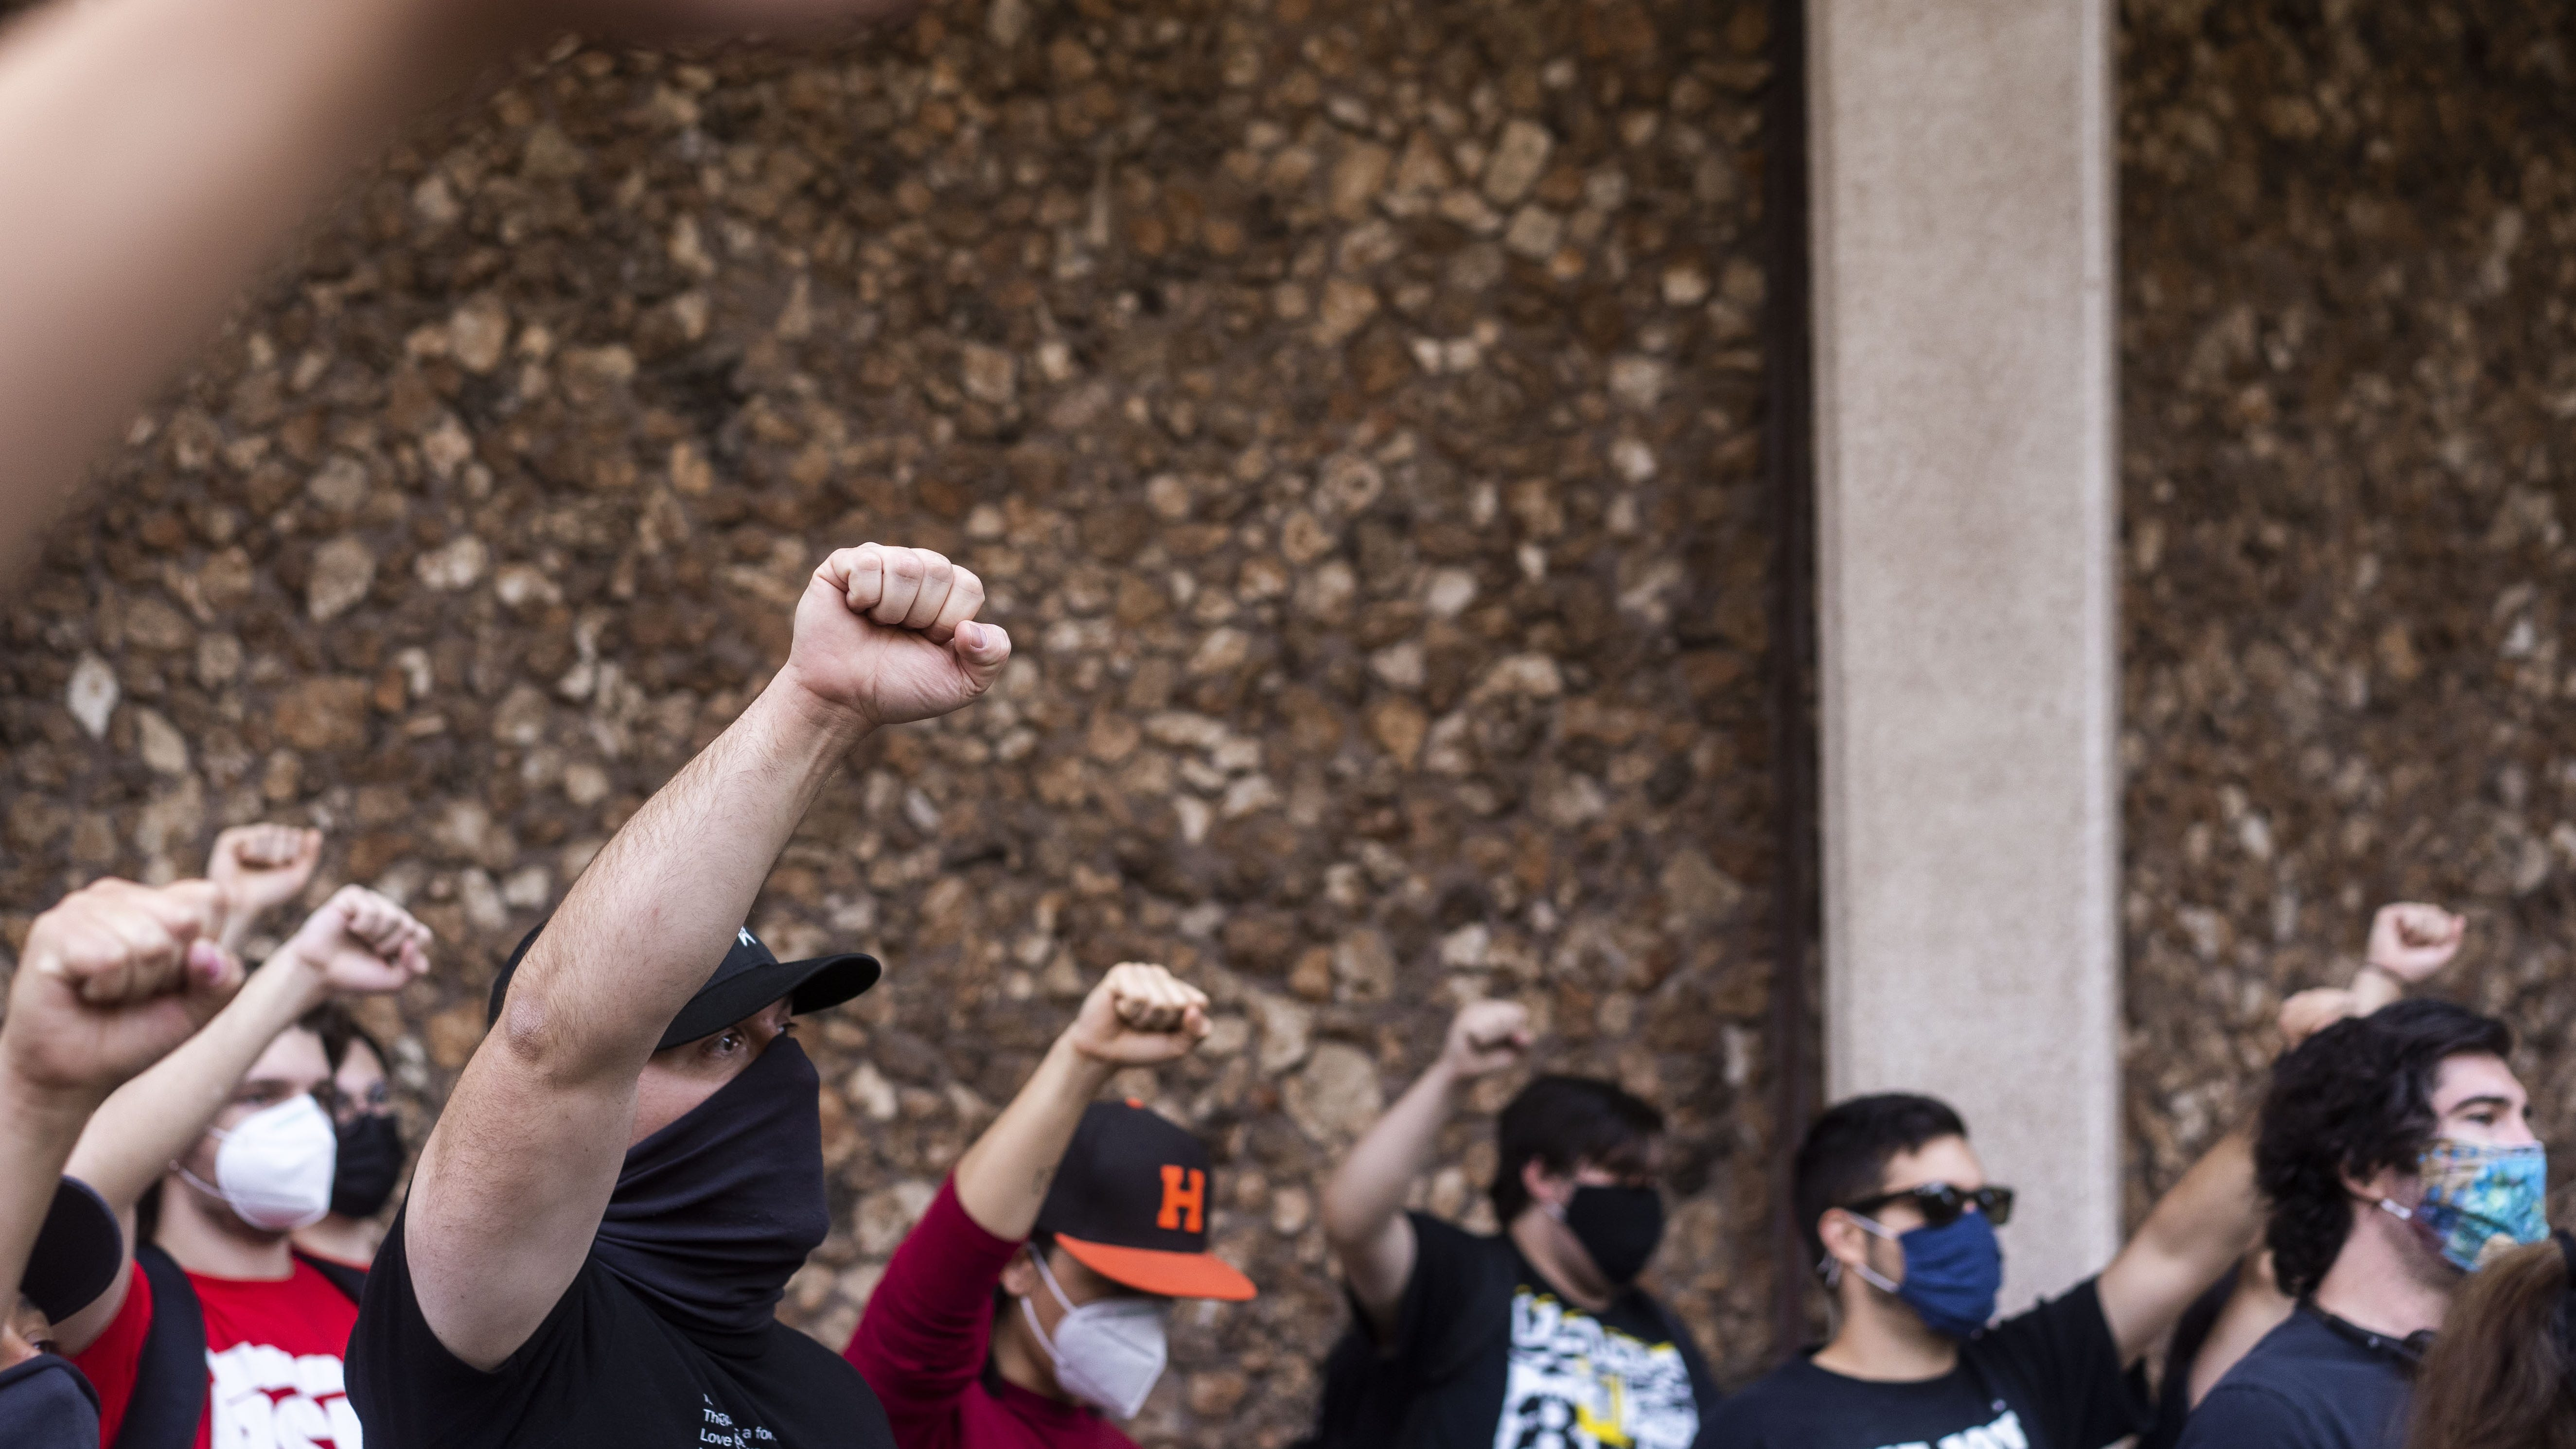 Protestors rally against police brutality near Phoenix City Hall